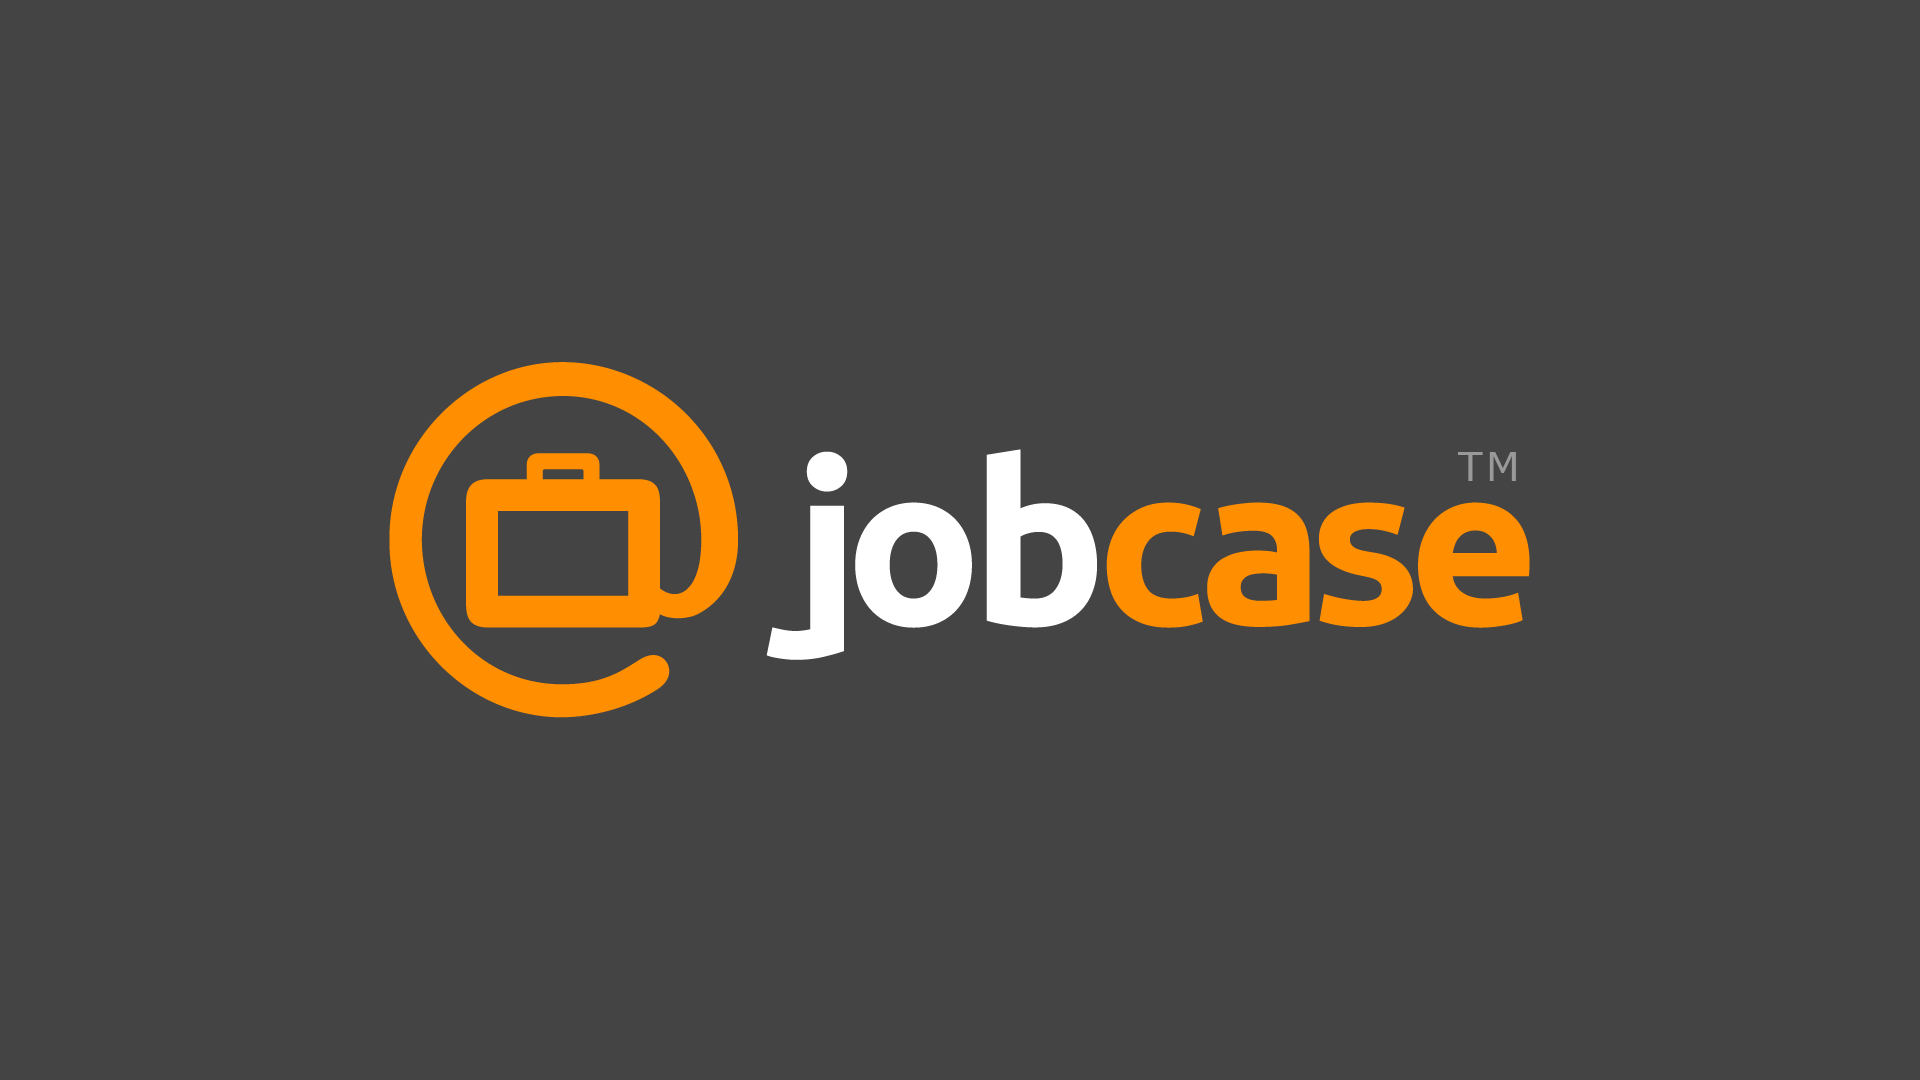 Three Key Takeaways From Our Interview with Jobcase